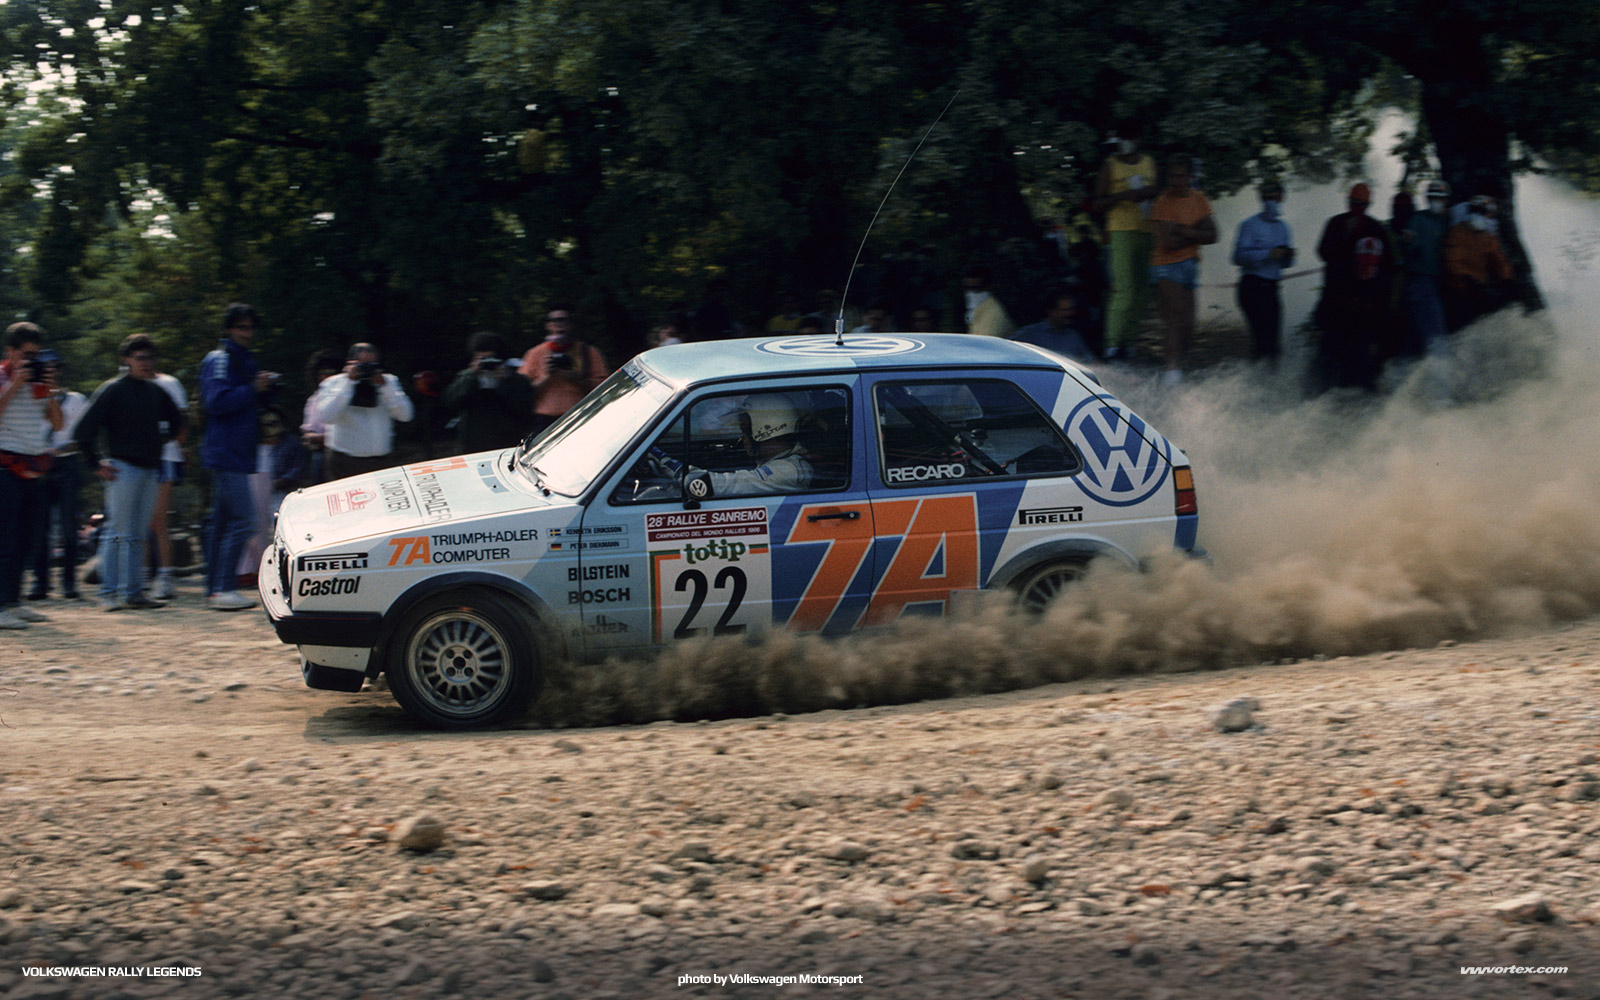 volkswagen-rally-legends-387